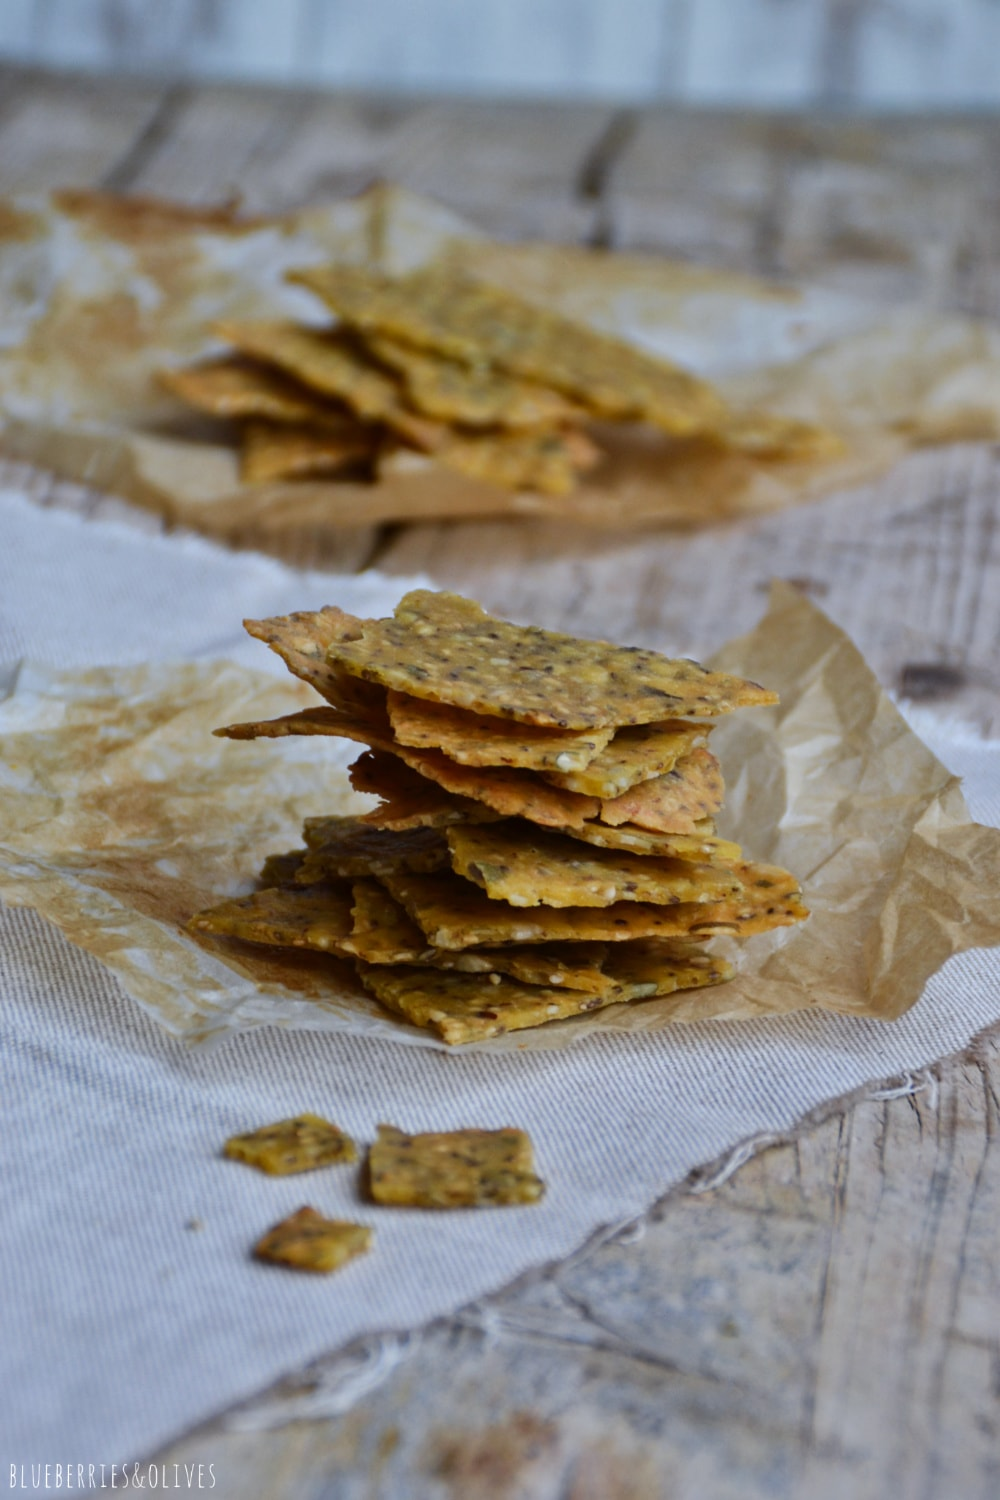 PILED CORN CRACKERS WITH AN OLD WOOD BACKGROUND